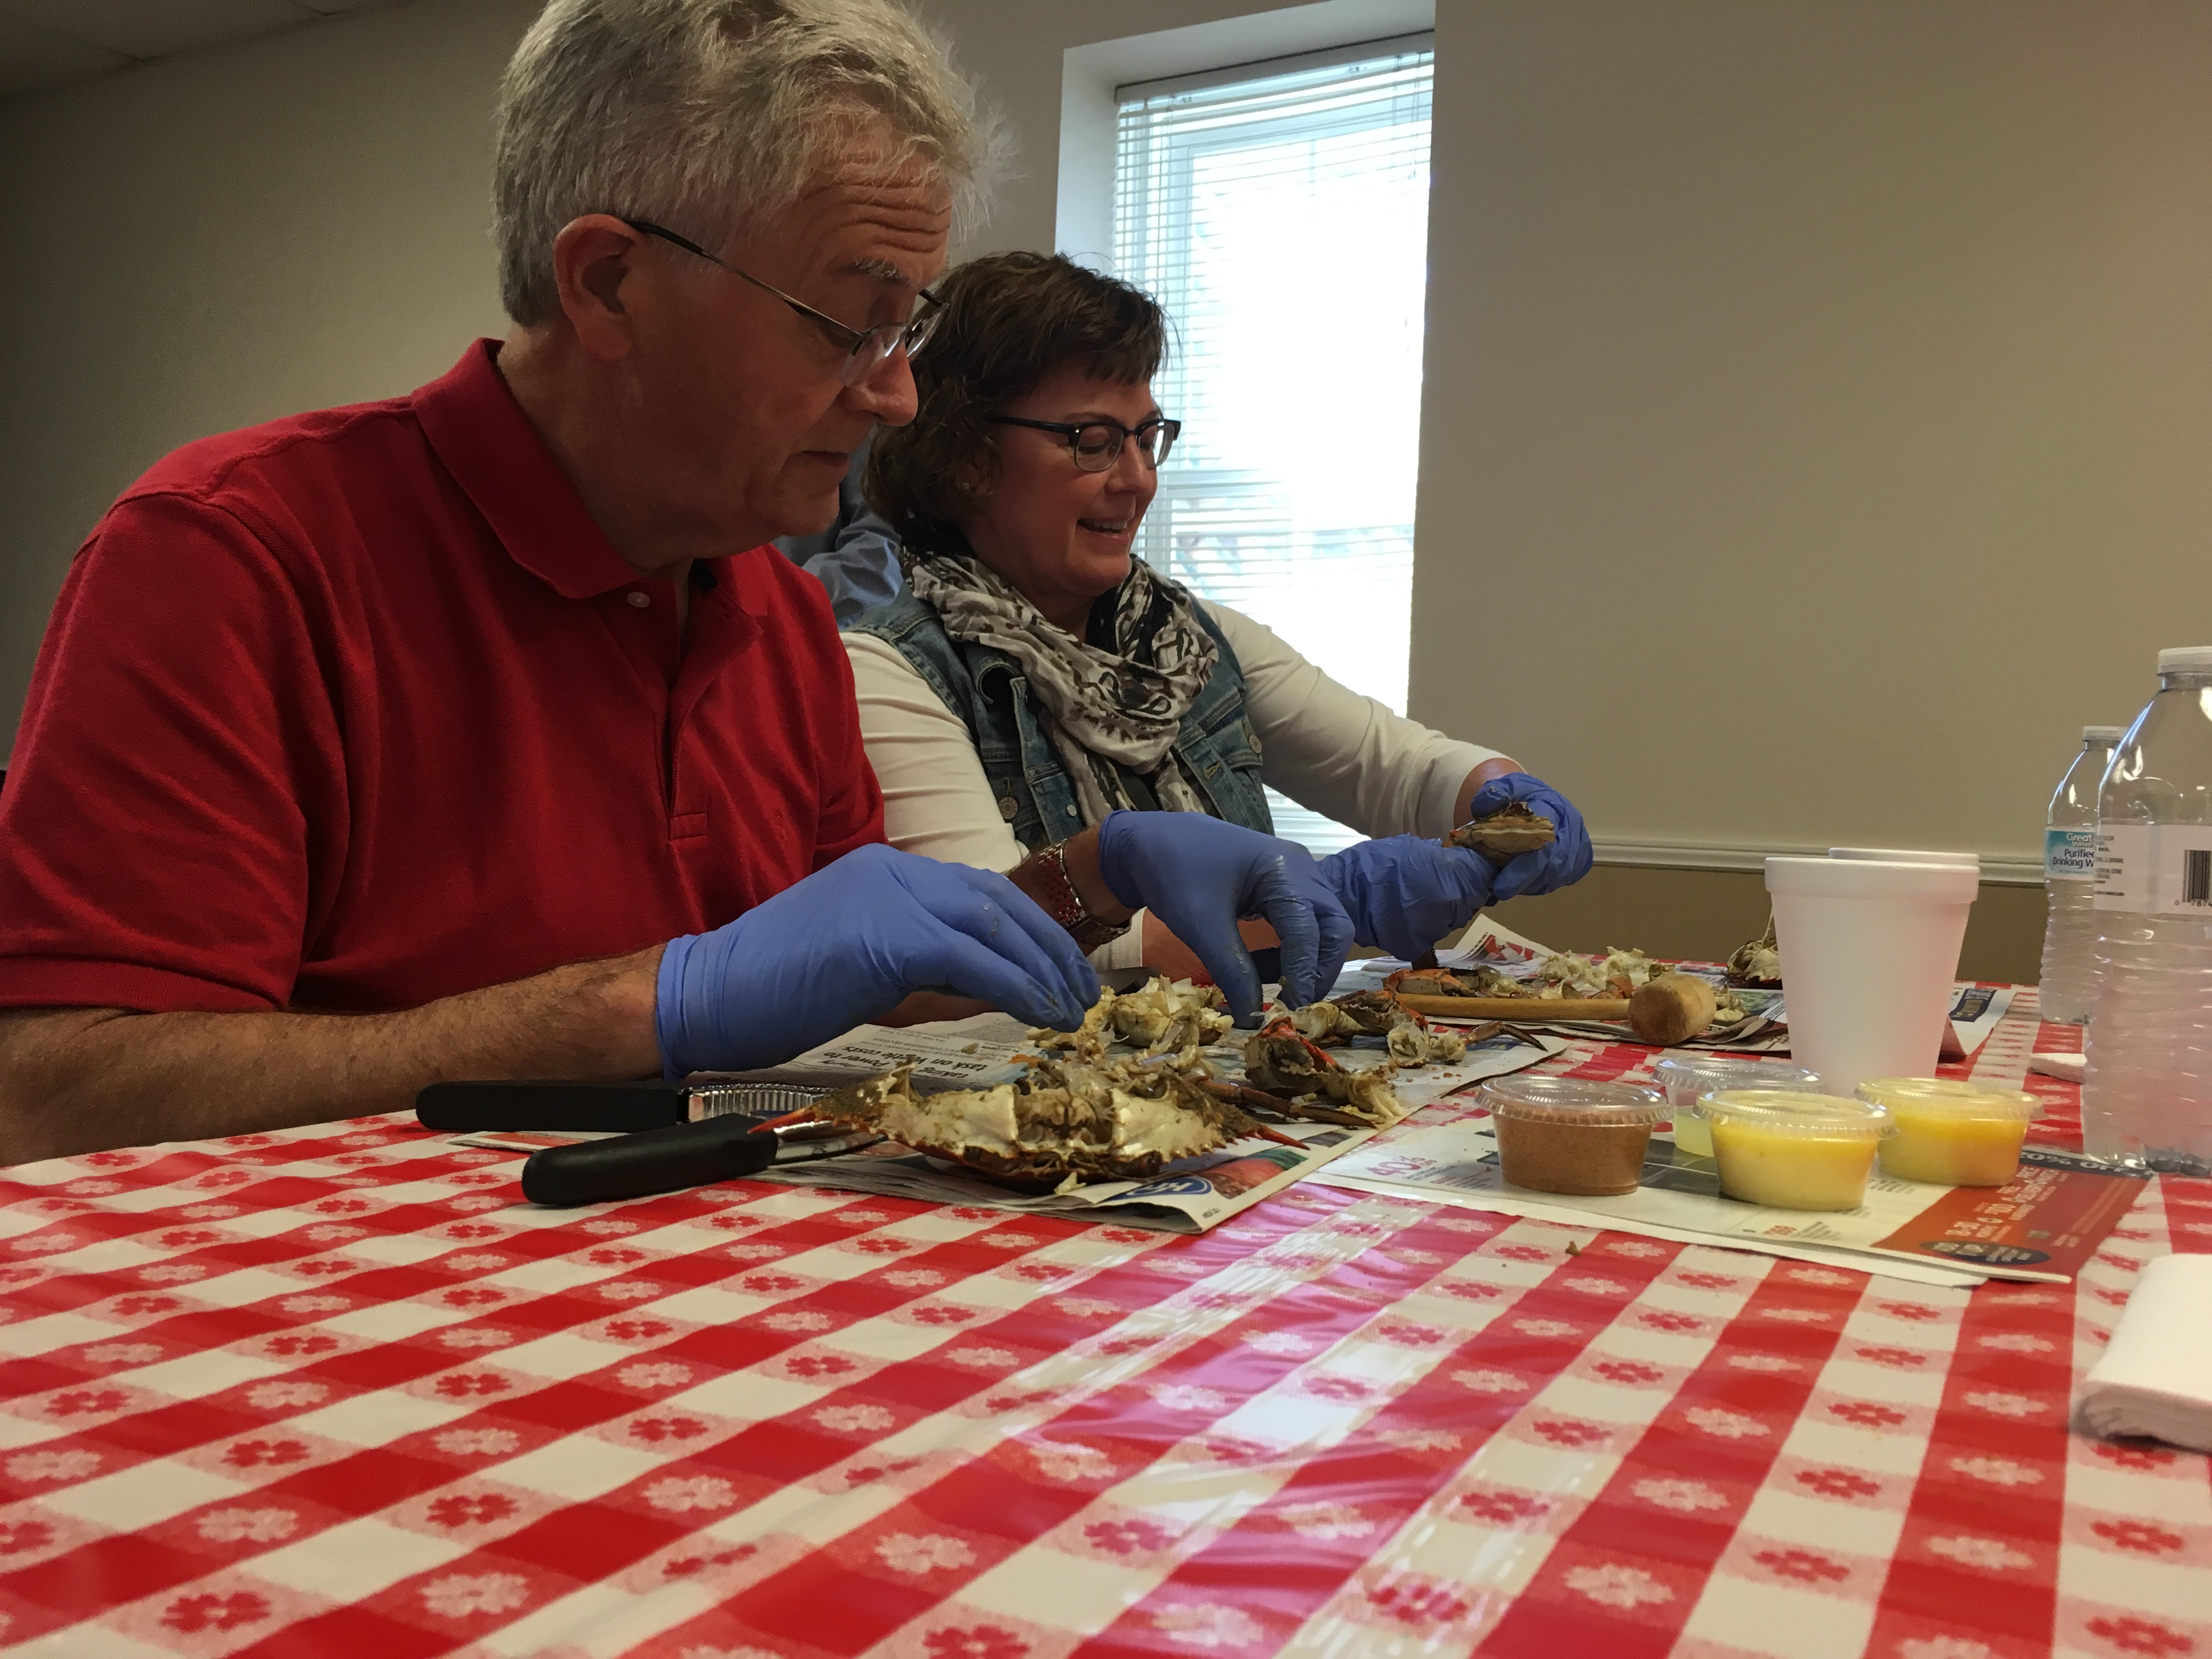 A Chatham County couple learns to clean Georgia blue crabs during an Ocean to Table class hosted by UGA Cooperative Extension and UGA Marine Extension and Georgia Sea Grant in November. UGA Cooperative Extension in Chatham County has teamed up with UGA Marine Extension and Georgia Sea Grant to help introduce Georgians the nutritious and delicious seafood harvested from the state's coastal waters through the Ocean to Table series.